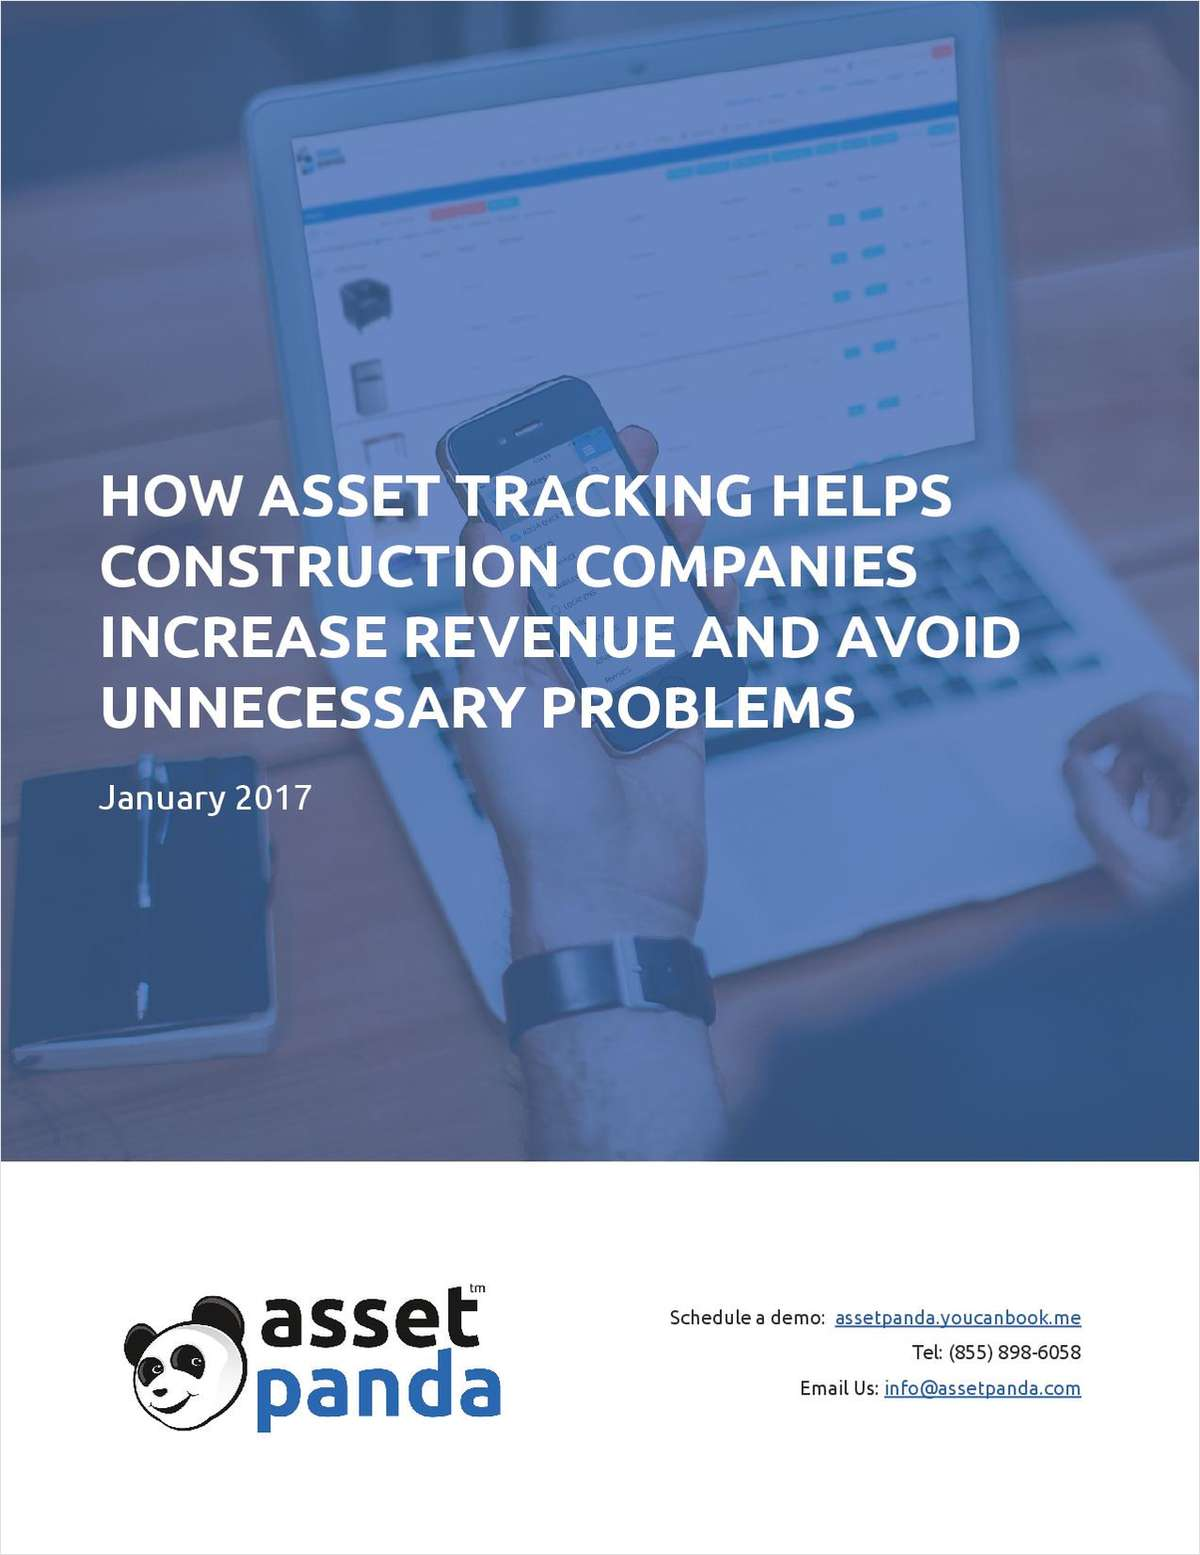 How Asset Tracking Helps Construction Companies Increase Revenue and Avoid Unnecessary Problems